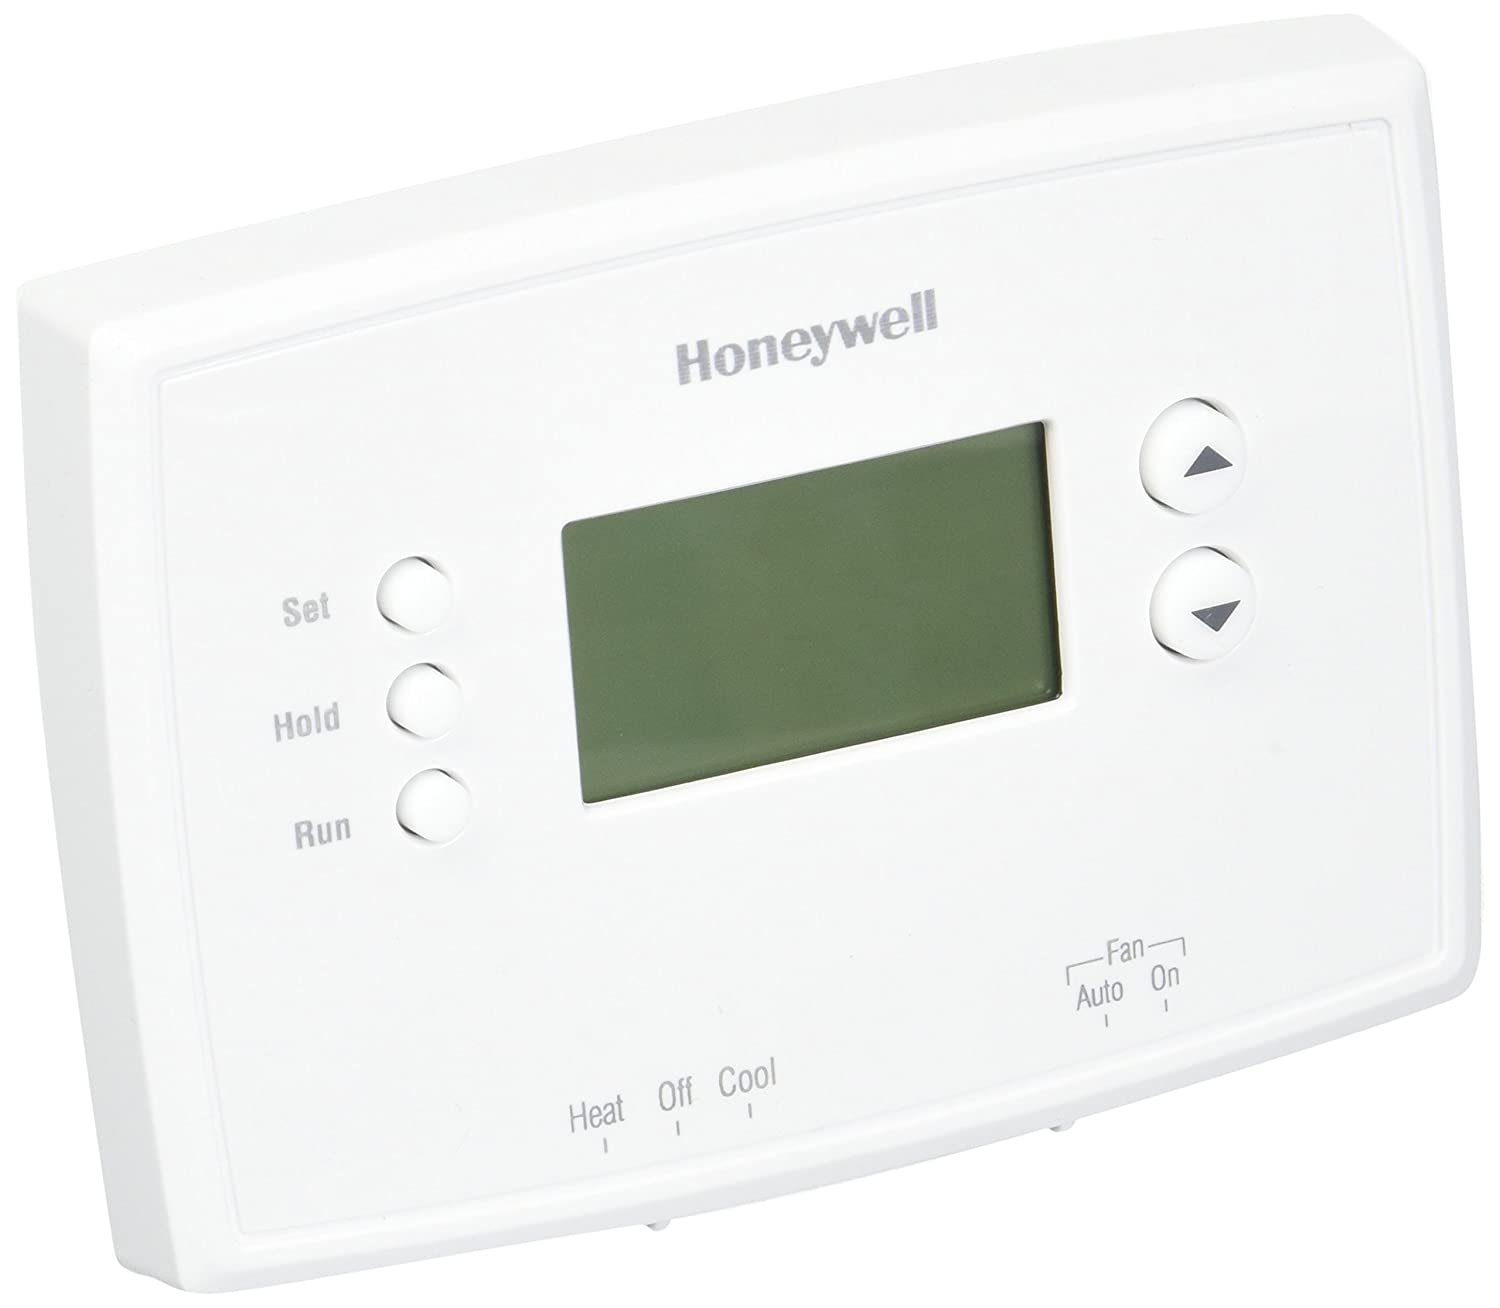 Honeywell Home 5-2 Day Programmable Thermostat (RTH2300B1038/E1)